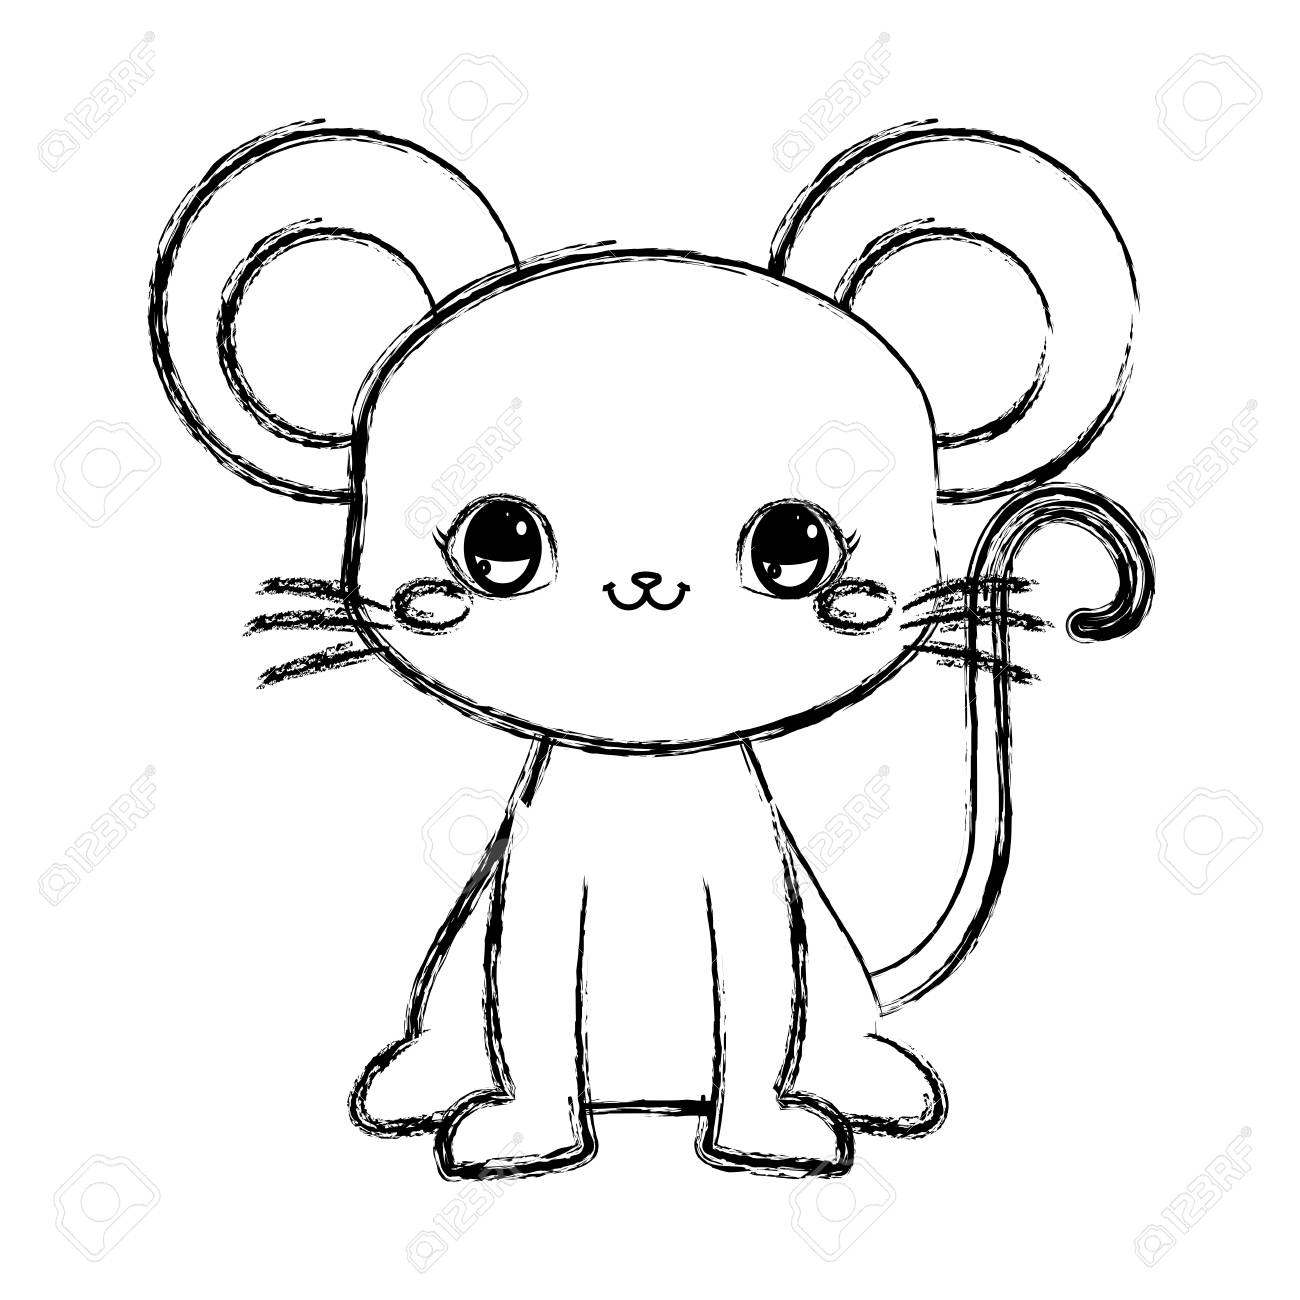 Cute Mouse Baby Sitting Cartoon Vector Illustration Hand Drawing ...